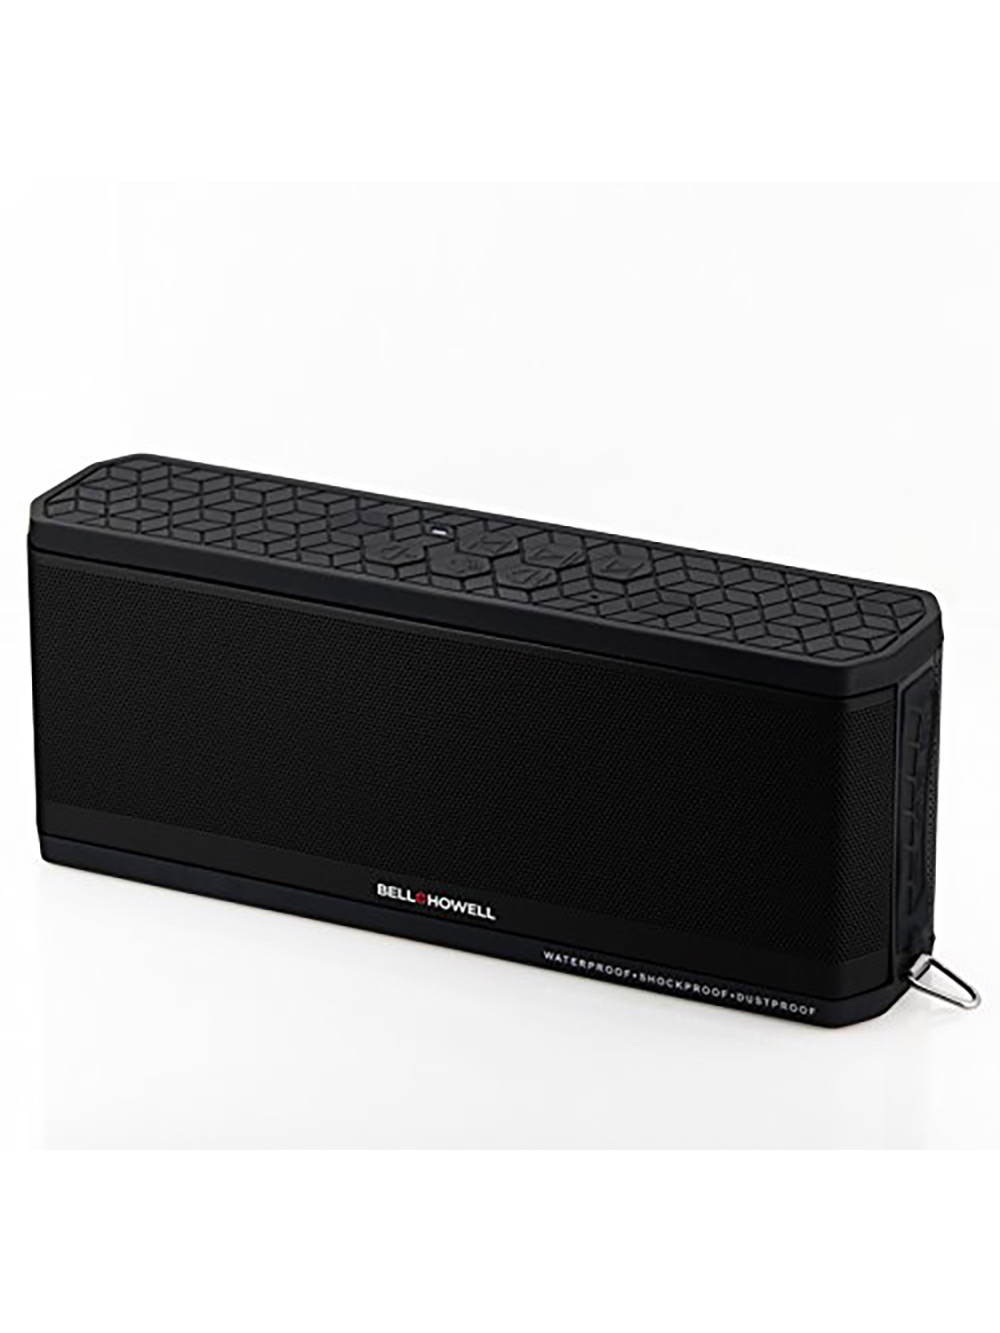 Bell+Howell BH50-R Waterproof Desktop Bluetooth Speaker